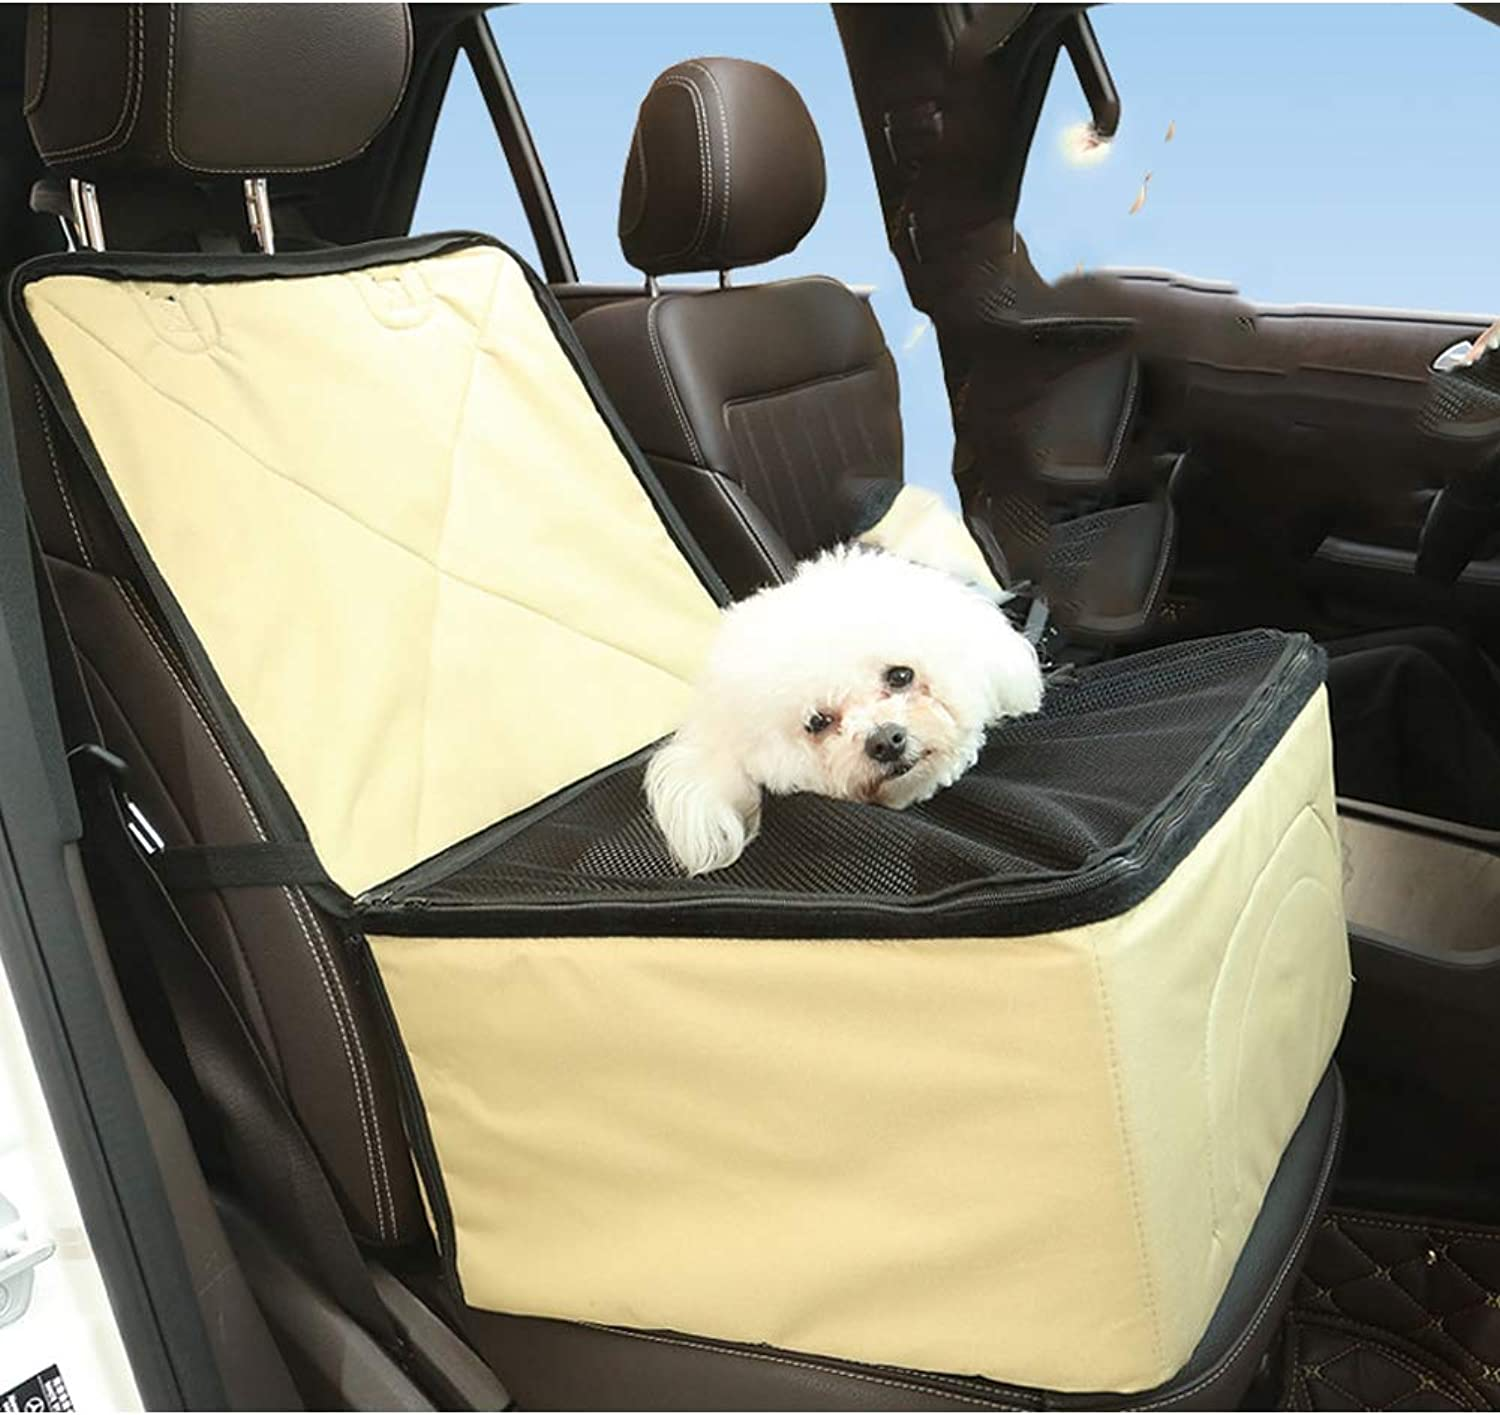 Pet Car Mesh Gaze Bag, Portable Collapsible mesh Breathable Waterproof, can be Connected to car seat Belt, Suitable for Medium Dog and cat Rabbit Travel Bag, can be Placed in The Trunk